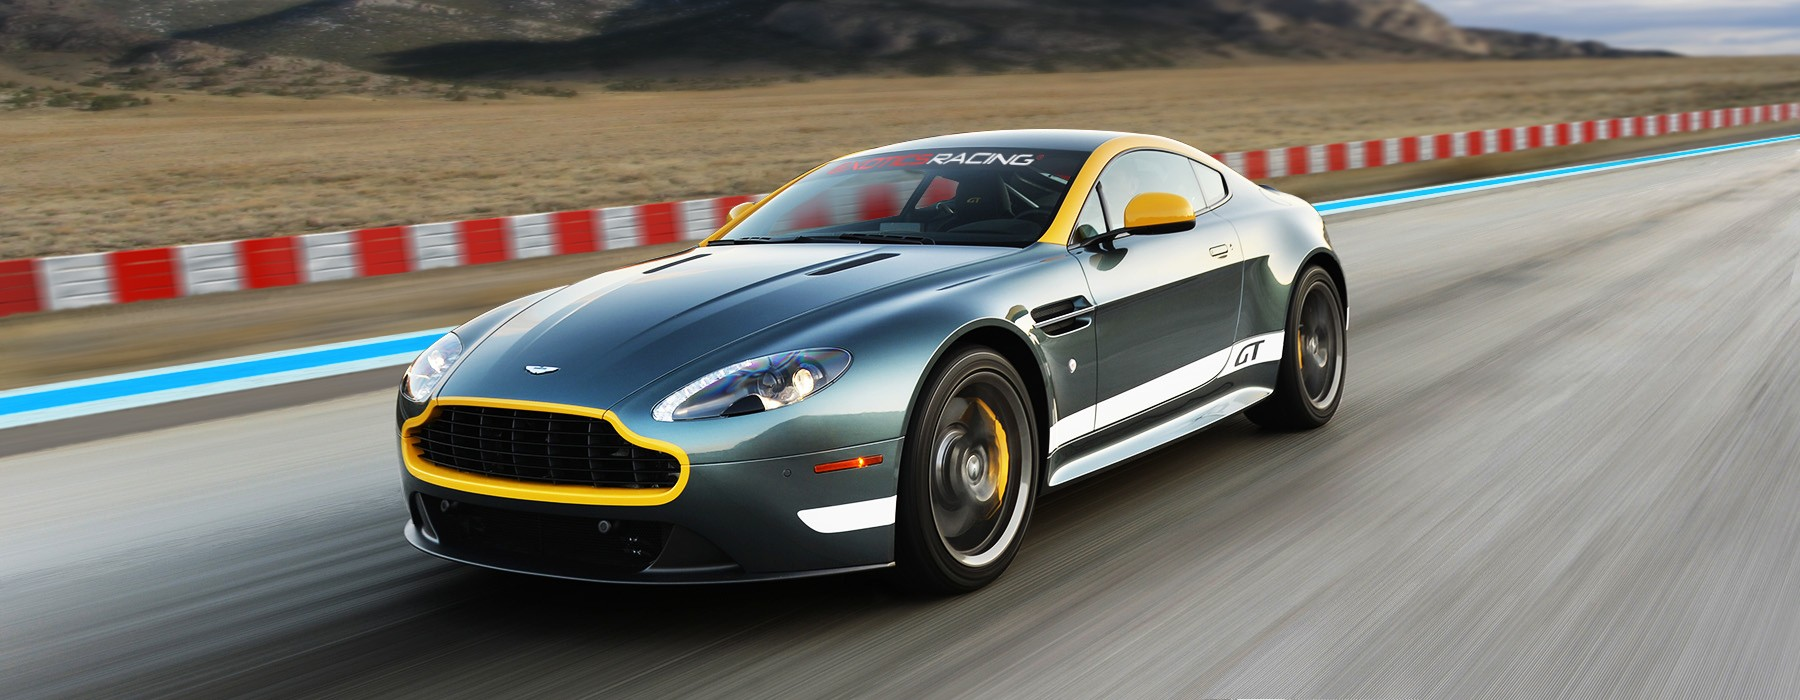 Exotics Racing Las Vegas Los Angeles Supercar Driving Experience - Aston martin gt